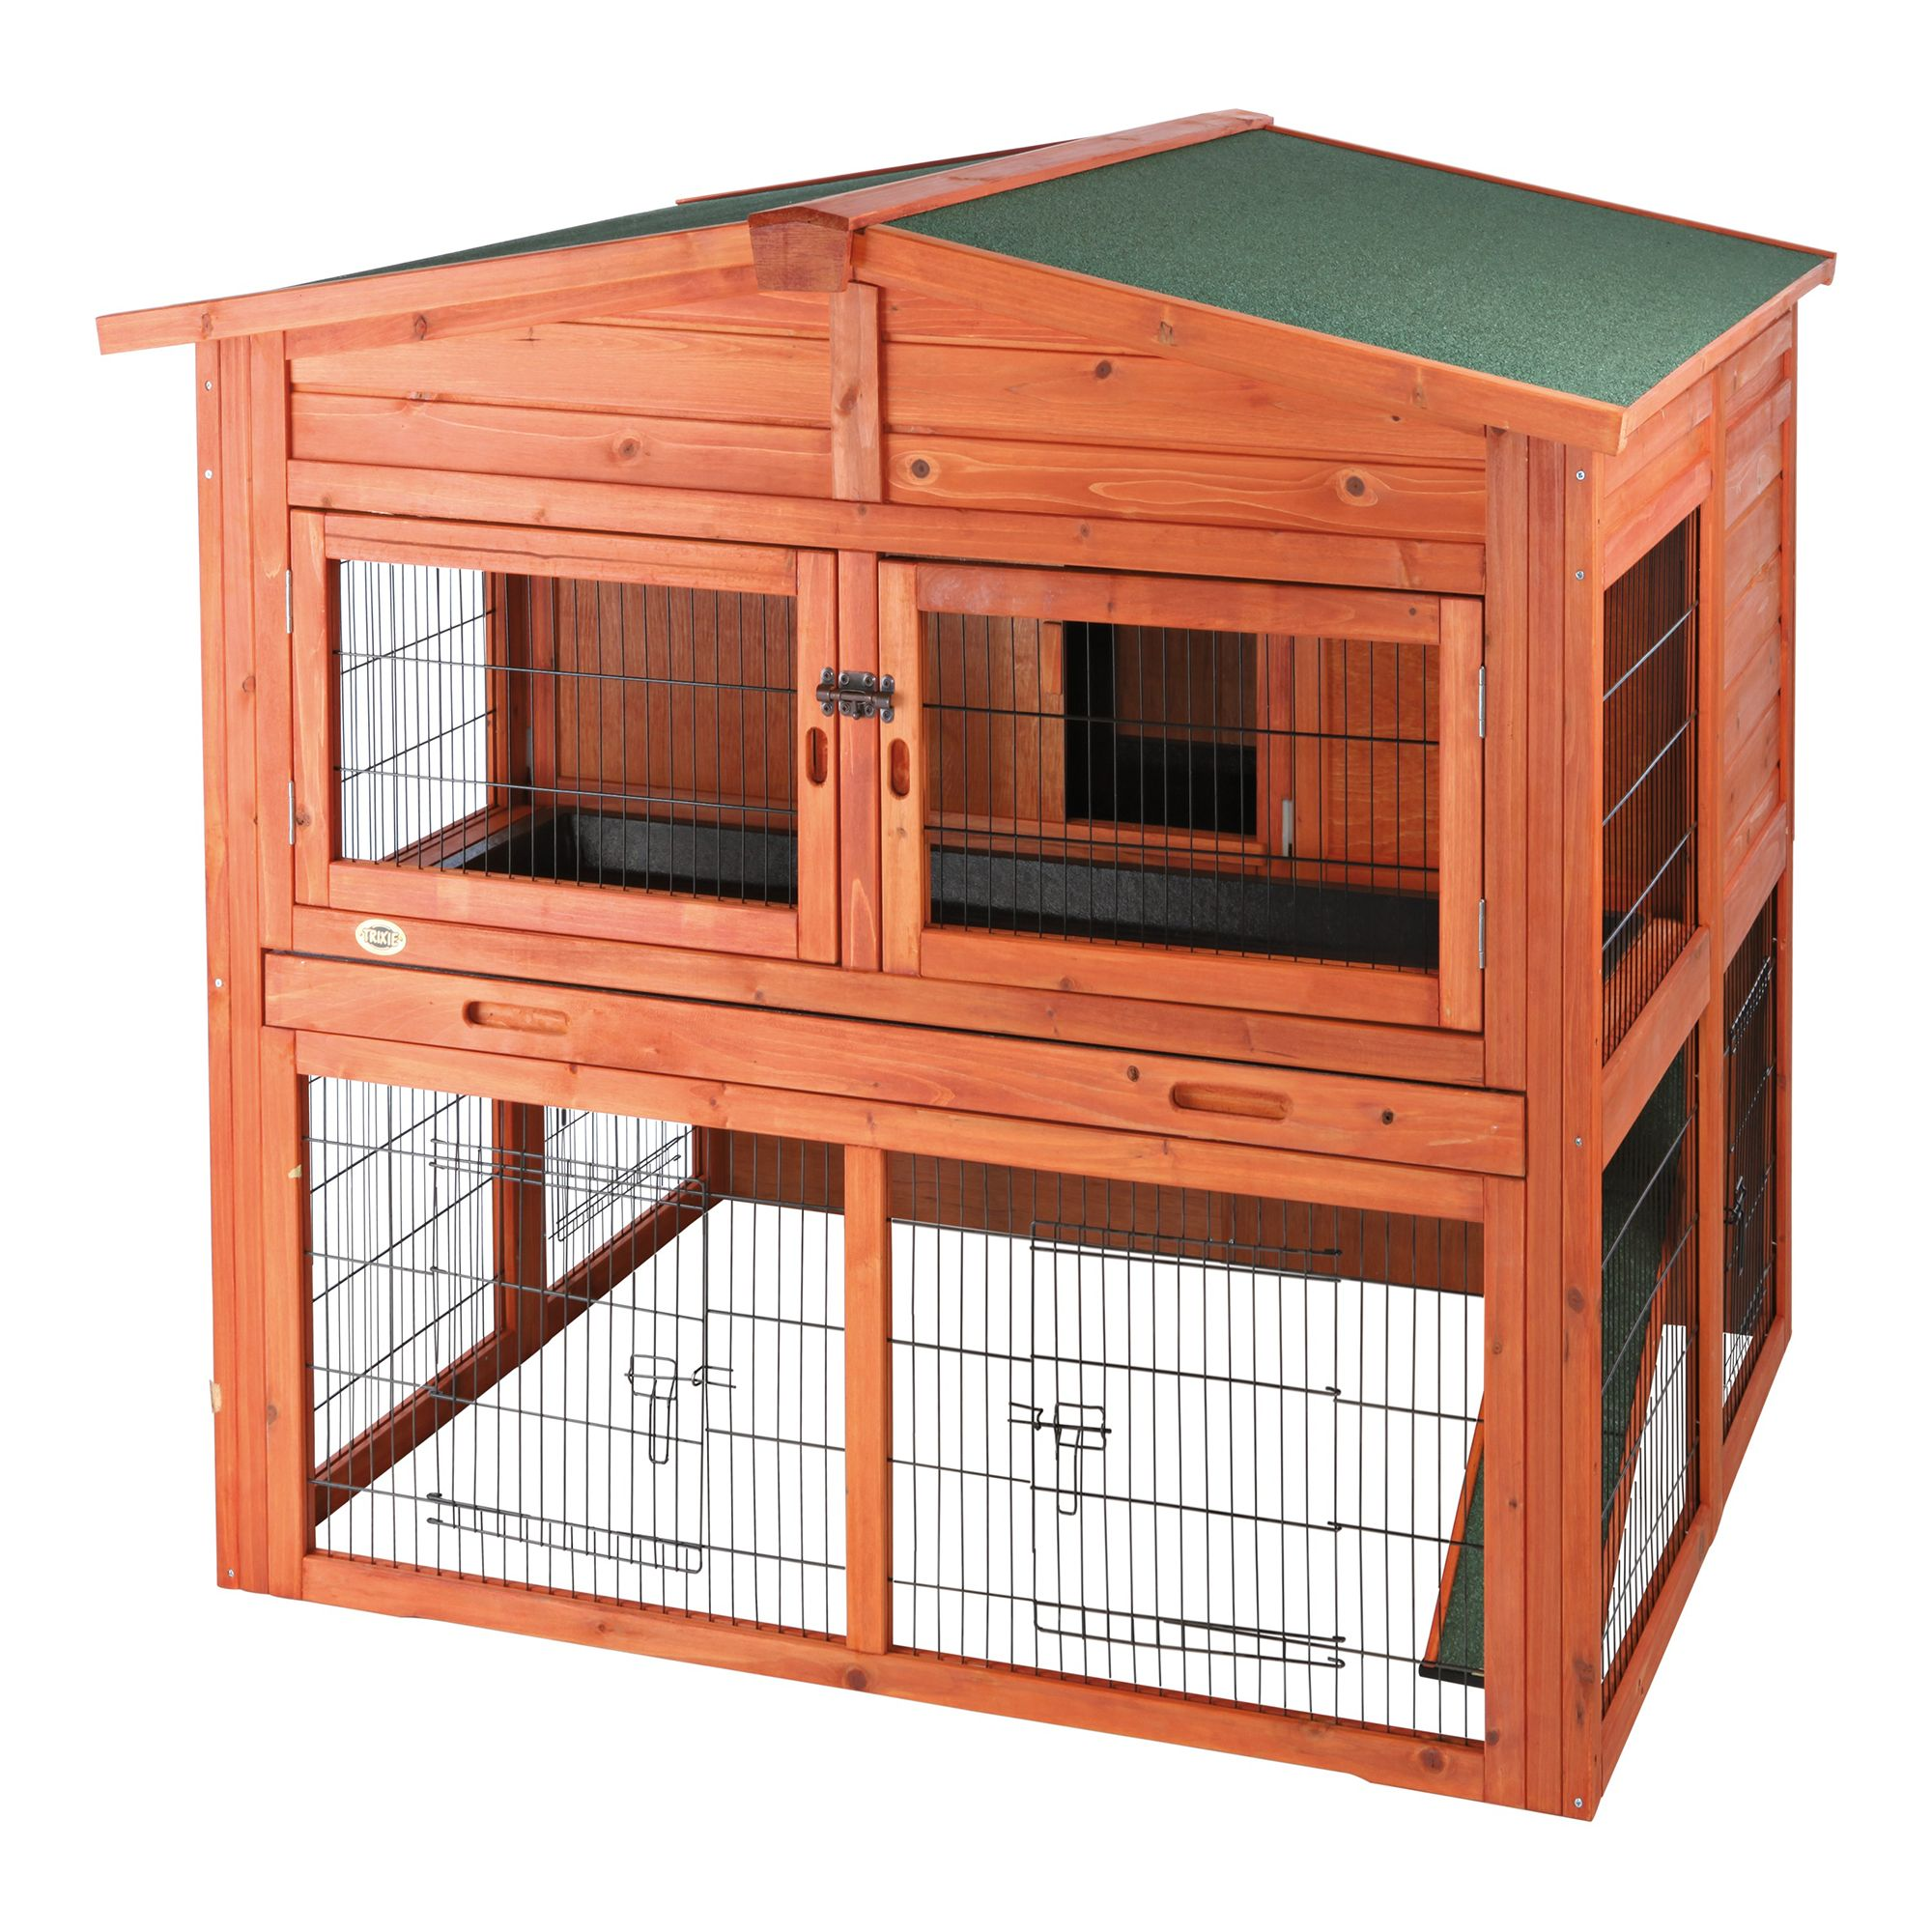 Trixie 2 Story Attic Rabbit Hutch Size X Large